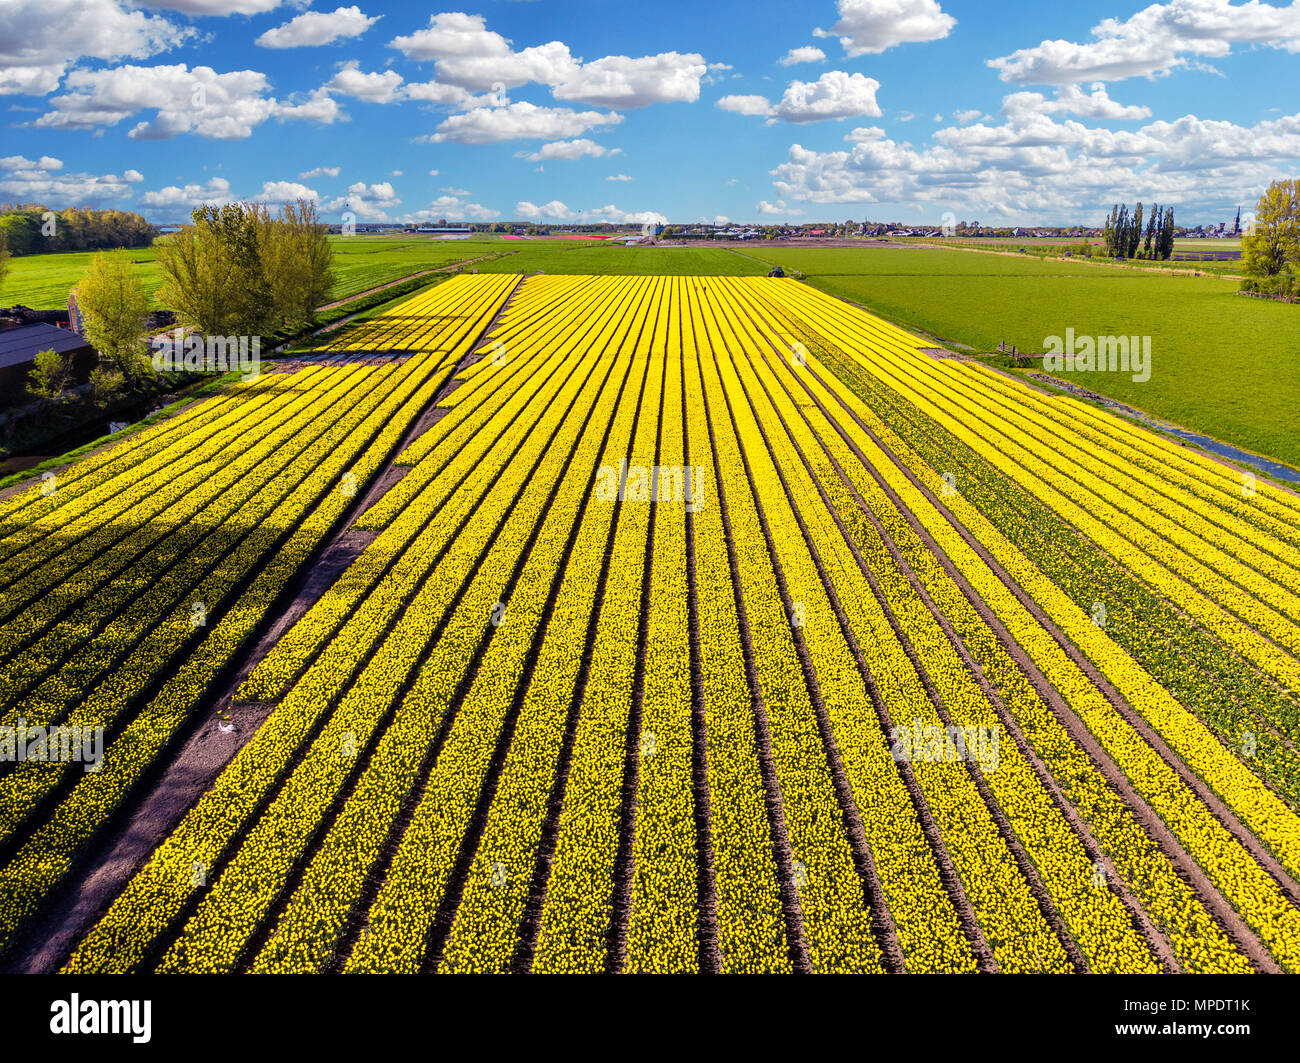 Yellow tulip field in the Netherlands from a higher perspective - Stock Image